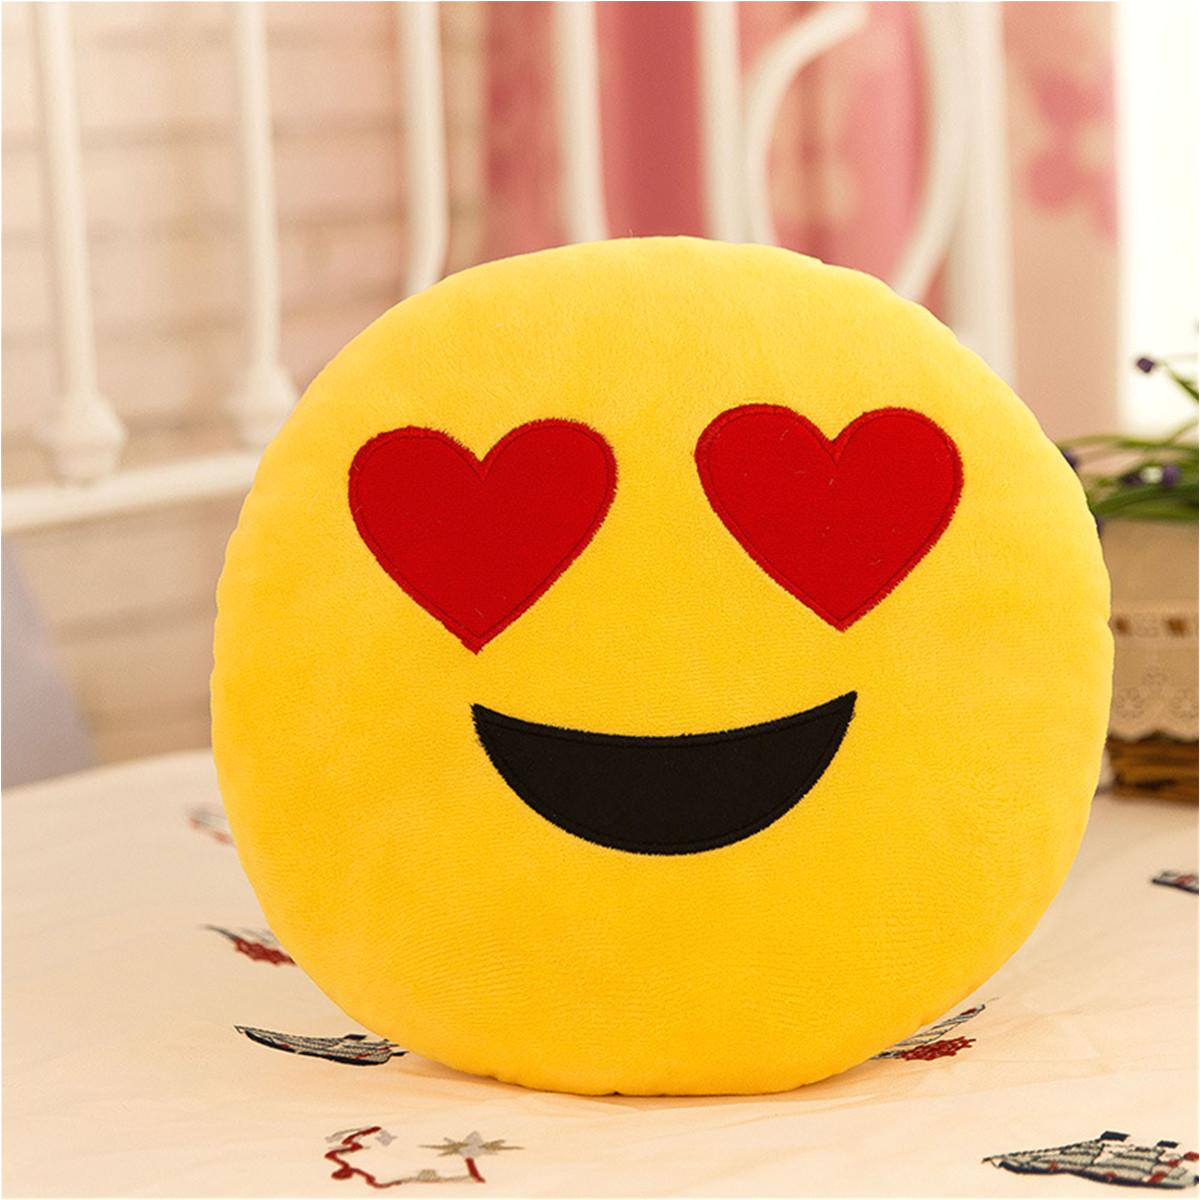 30cm cute creative emoji pillow soft stuffed plush toy doll round emoticon cushion home decor sofa bed throw smiley face pillow replacement cushions outdoor